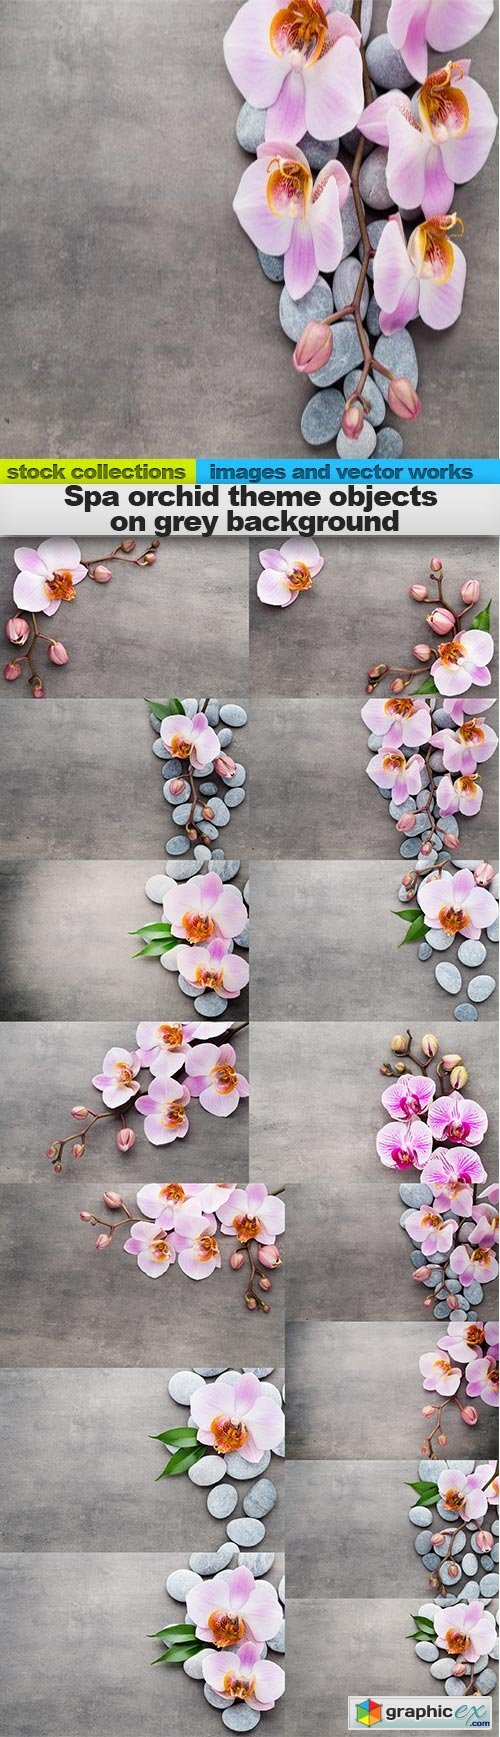 Spa orchid theme objects on grey background, 15 x EPS